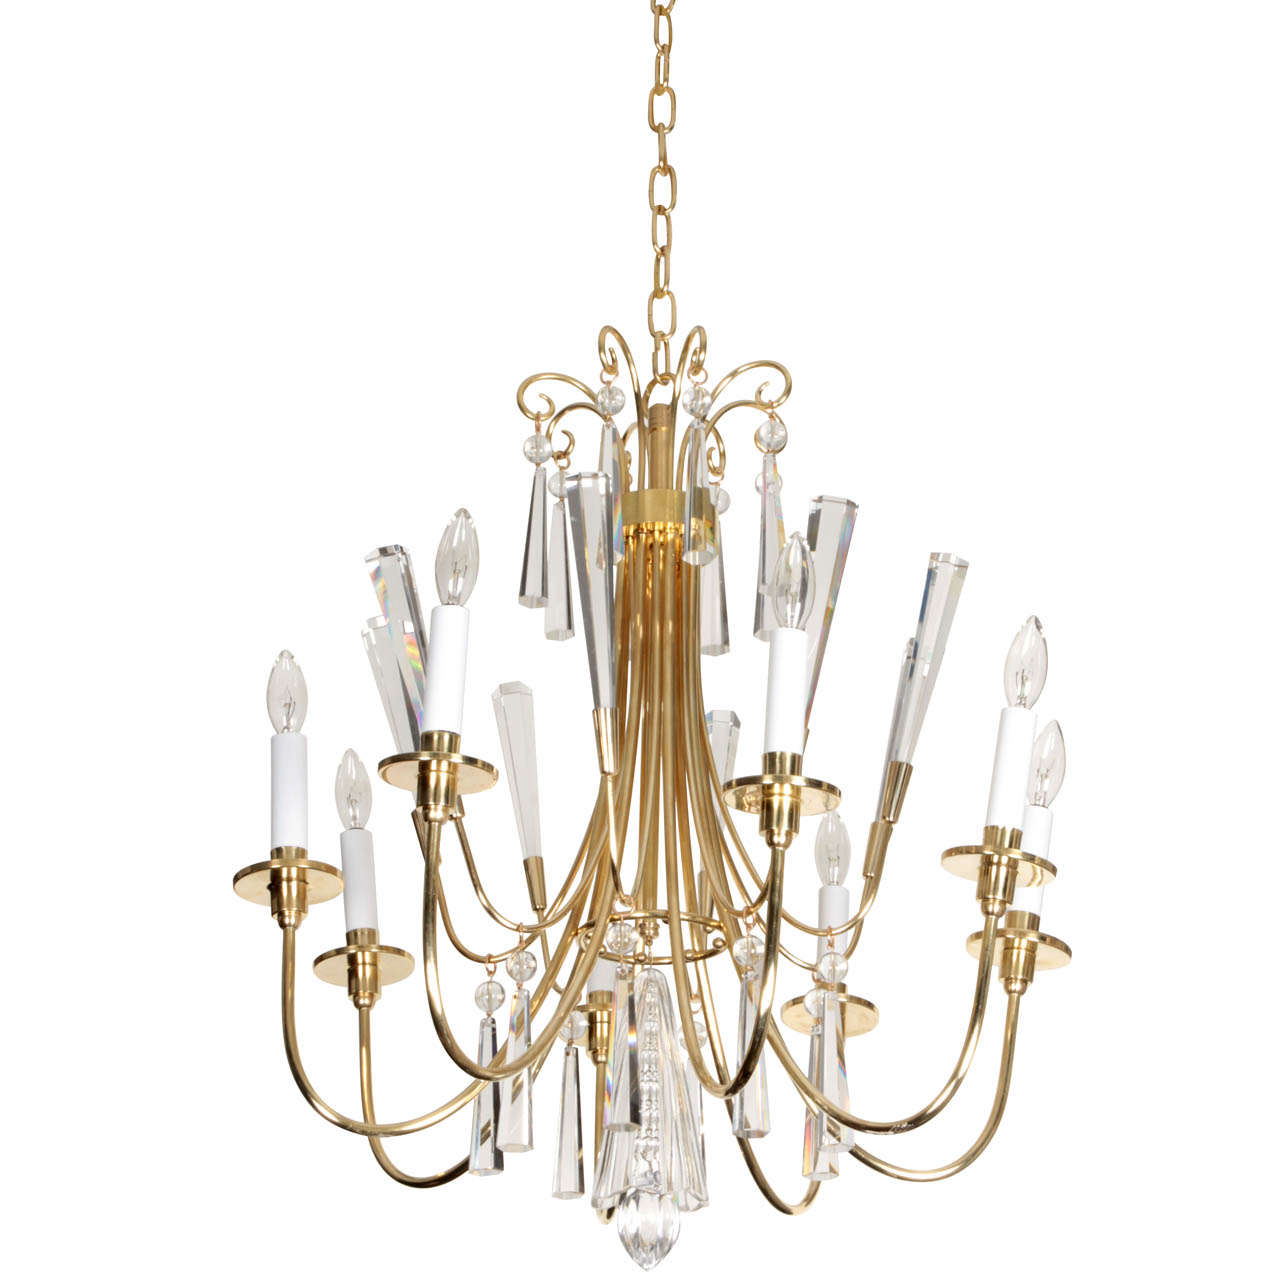 Parzinger Style Brass and Crystal Chandelier 1